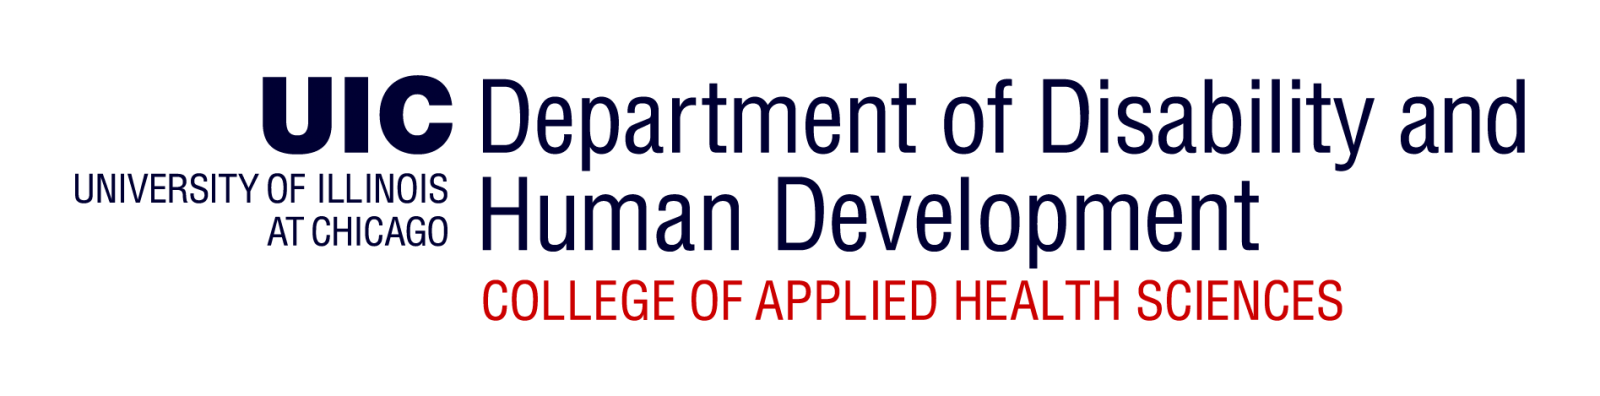 University of Illinois at Chicago, Department of Disability and Human Development, College of Applied Health Sciences